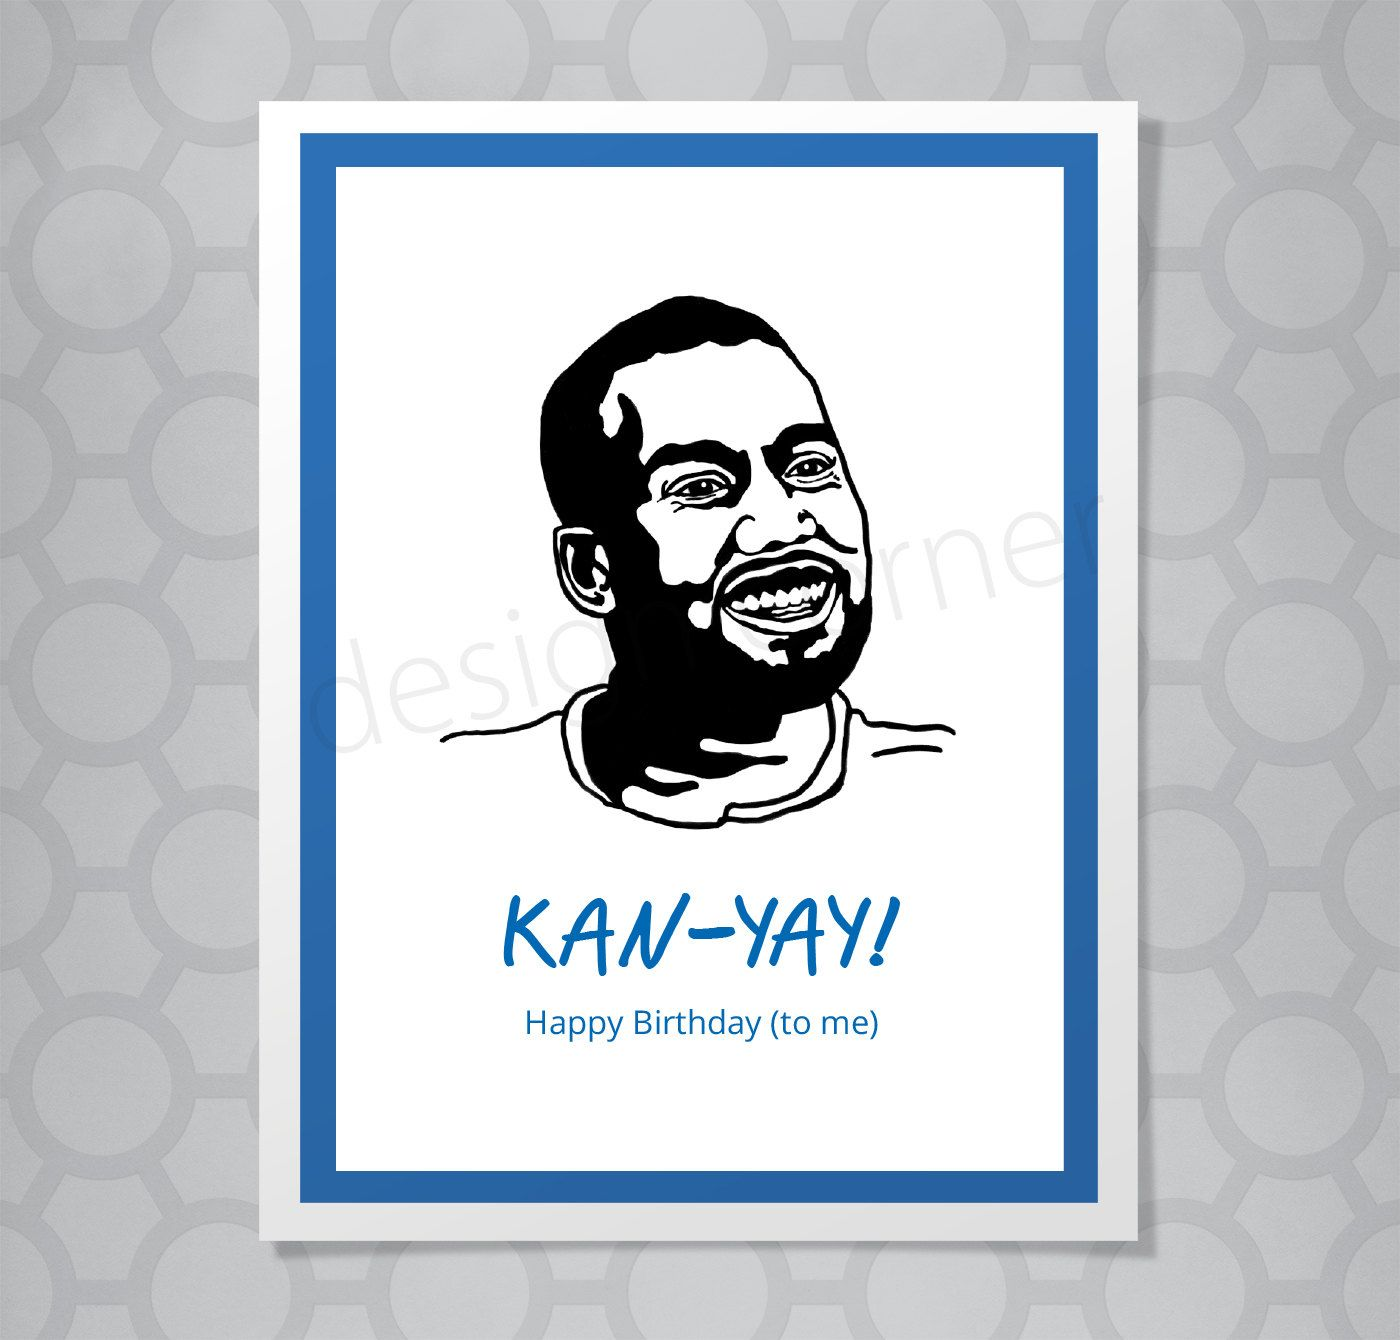 Kanye West Funny Illustrated Card Kanye West Birthday Kanye West Funny Happy Birthday Me